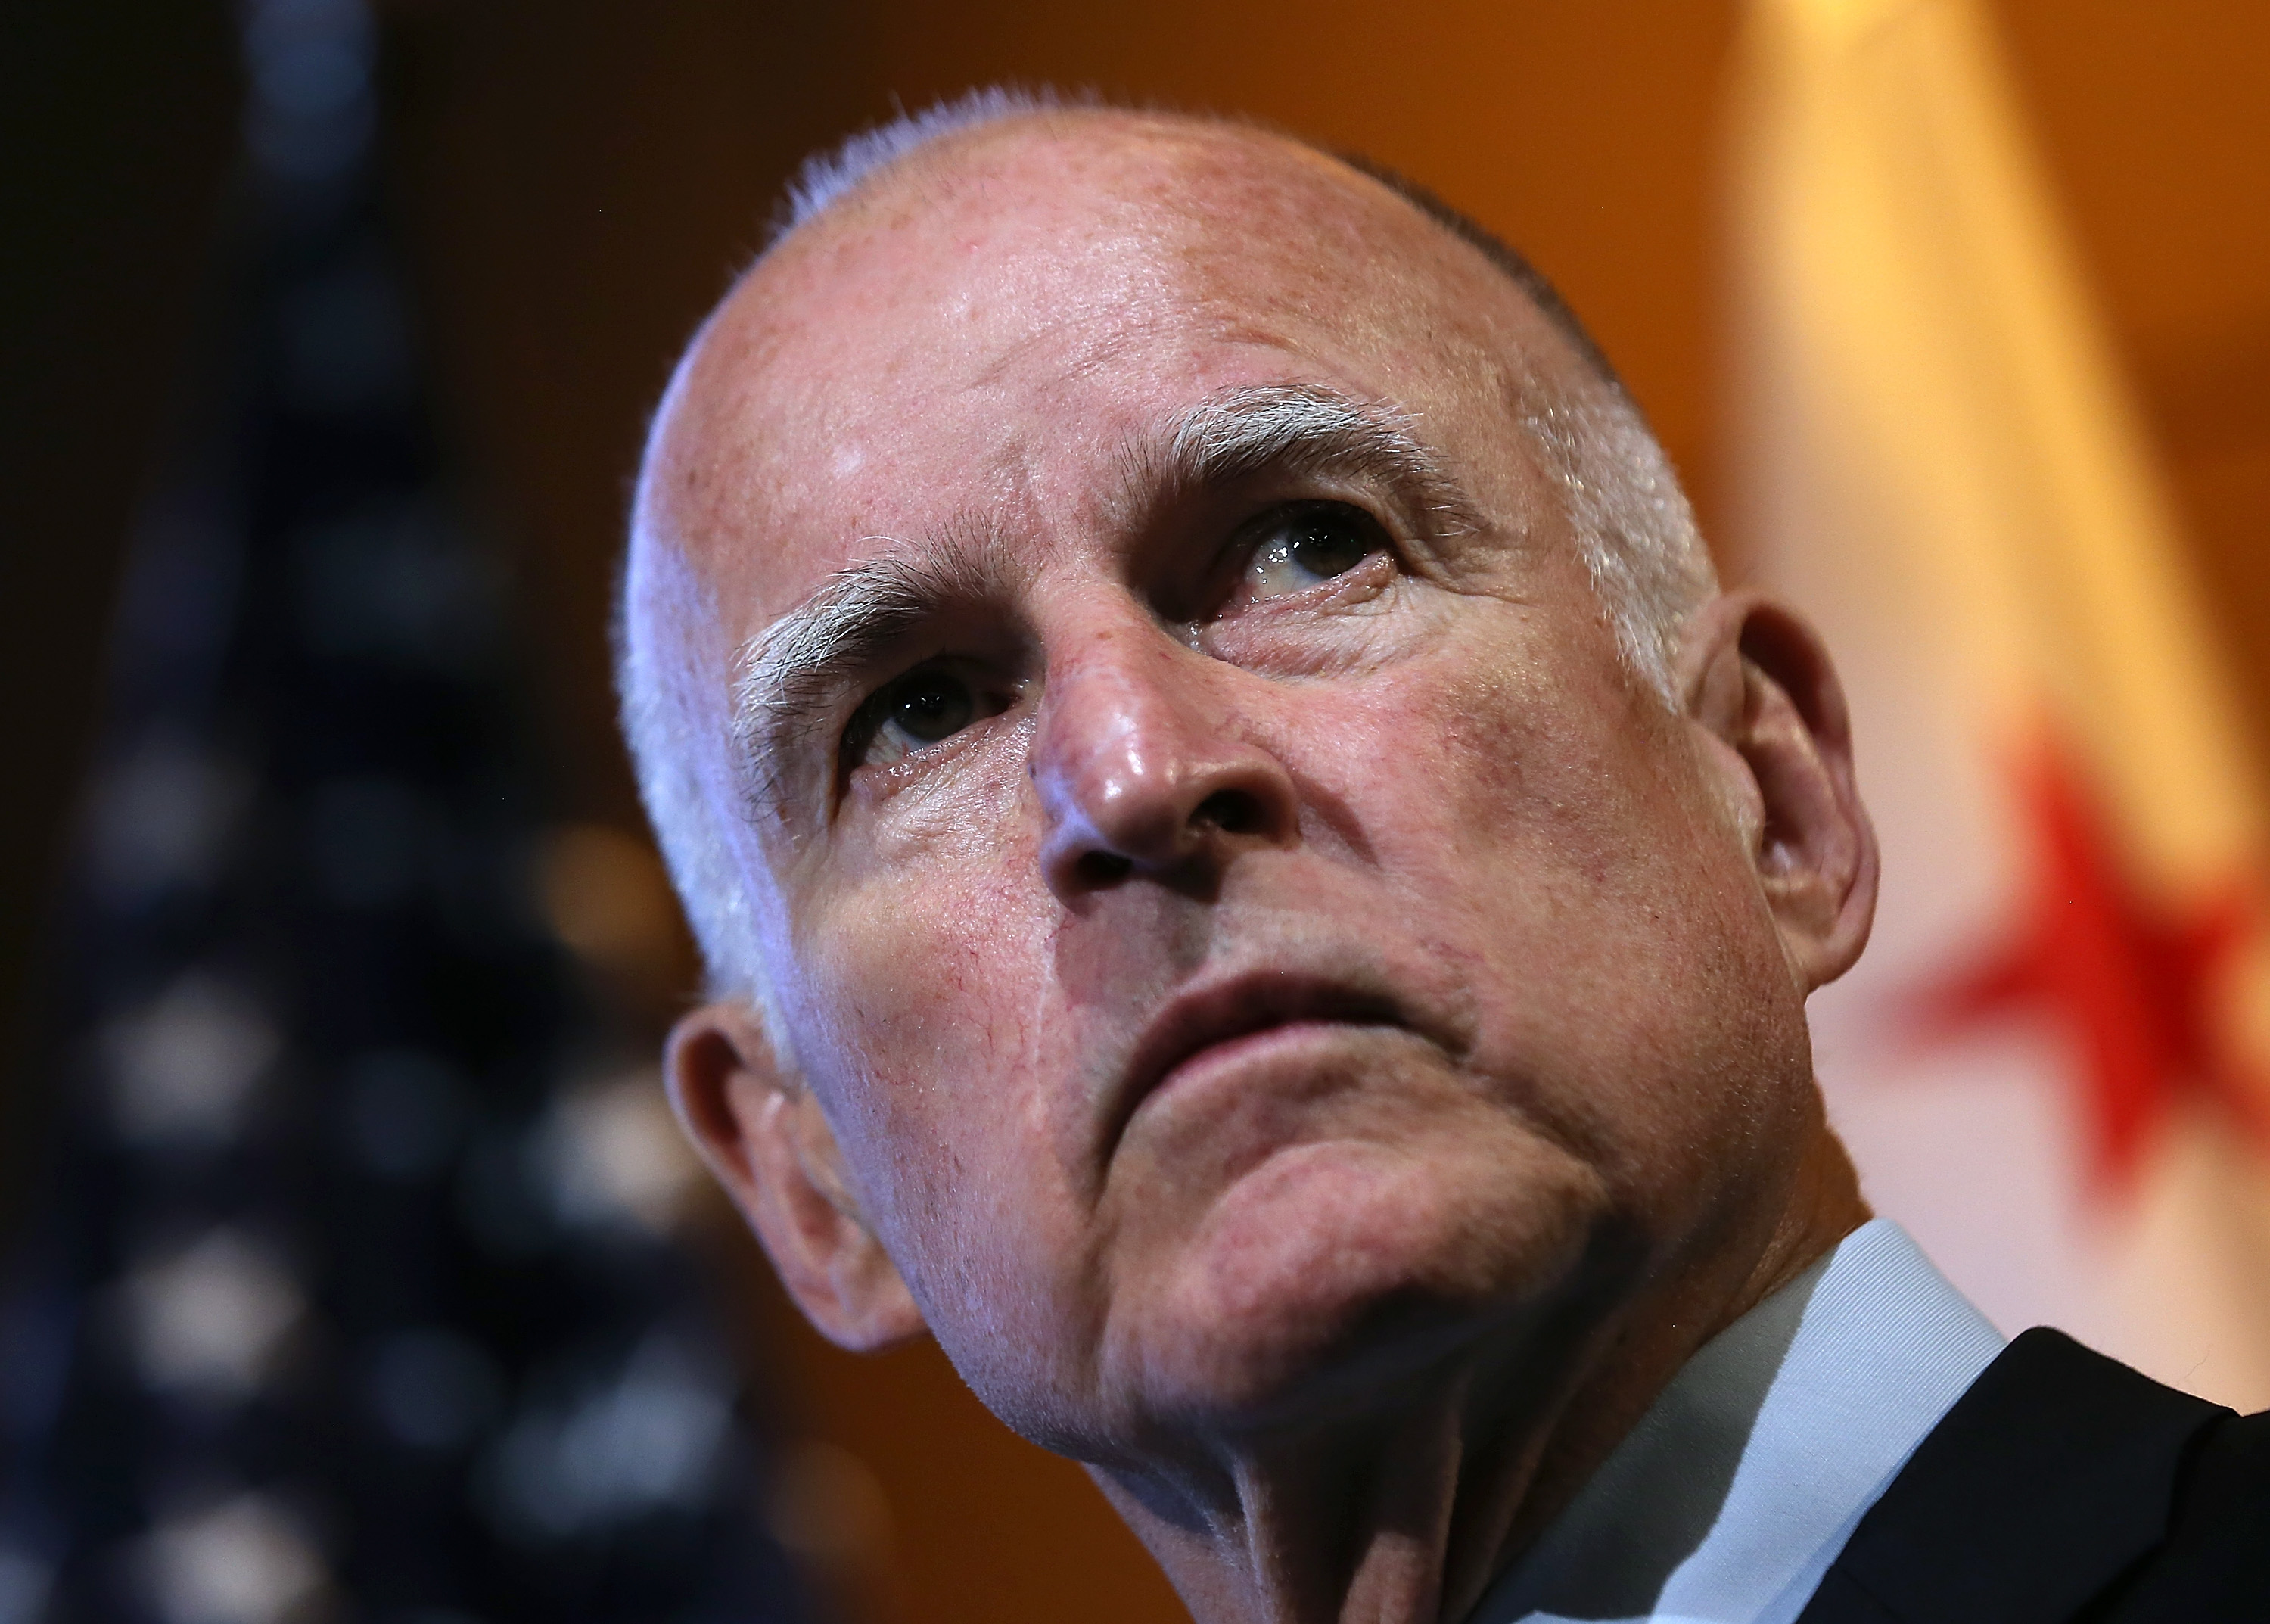 California Gov. Jerry Brown looks on during a news conference at Google headquarters on September 25, 2012.